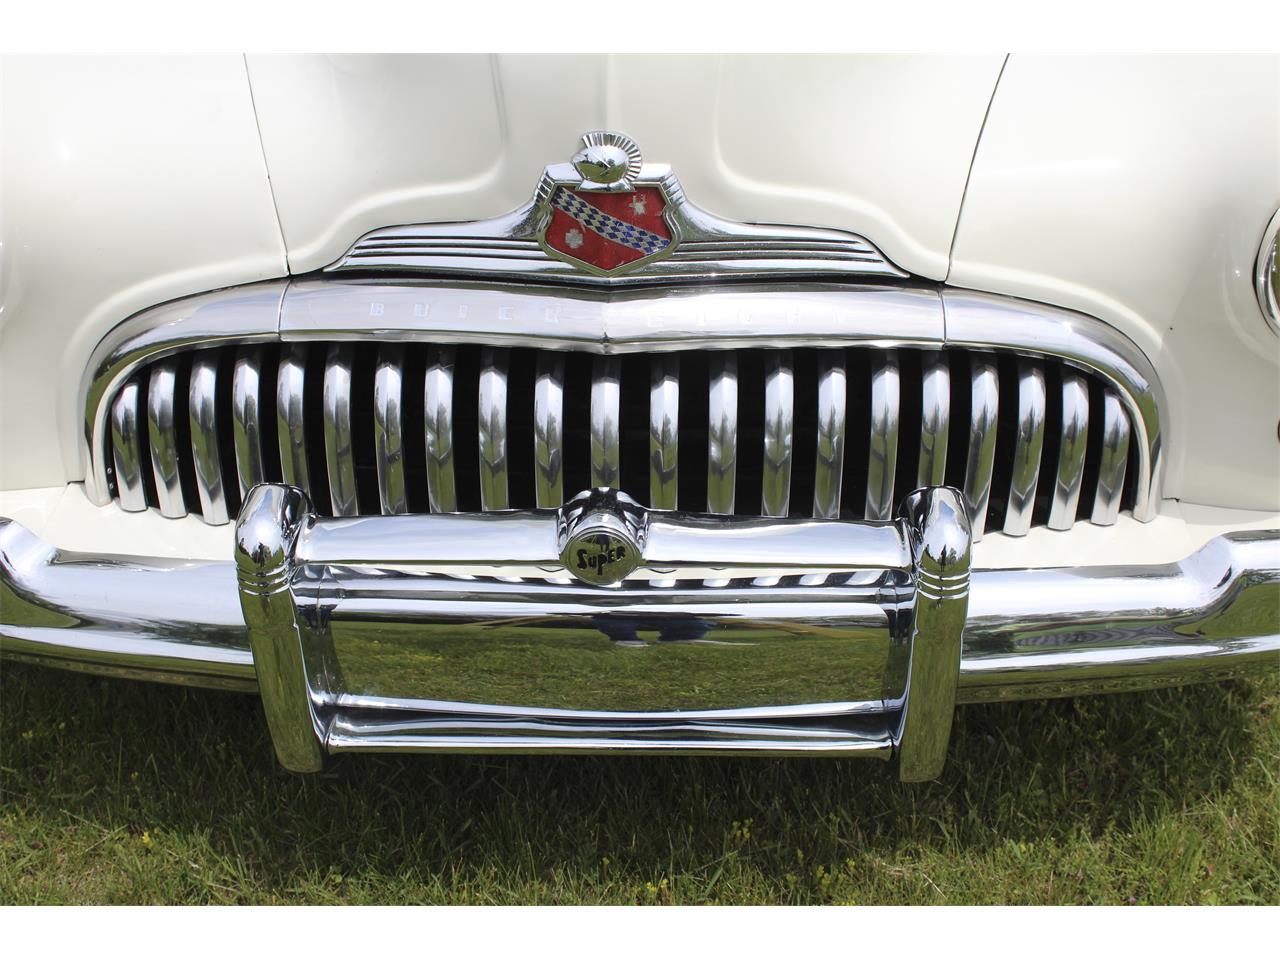 Large Picture of 1948 Buick Convertible located in Alpena Michigan - $55,000.00 Offered by a Private Seller - QJJ6